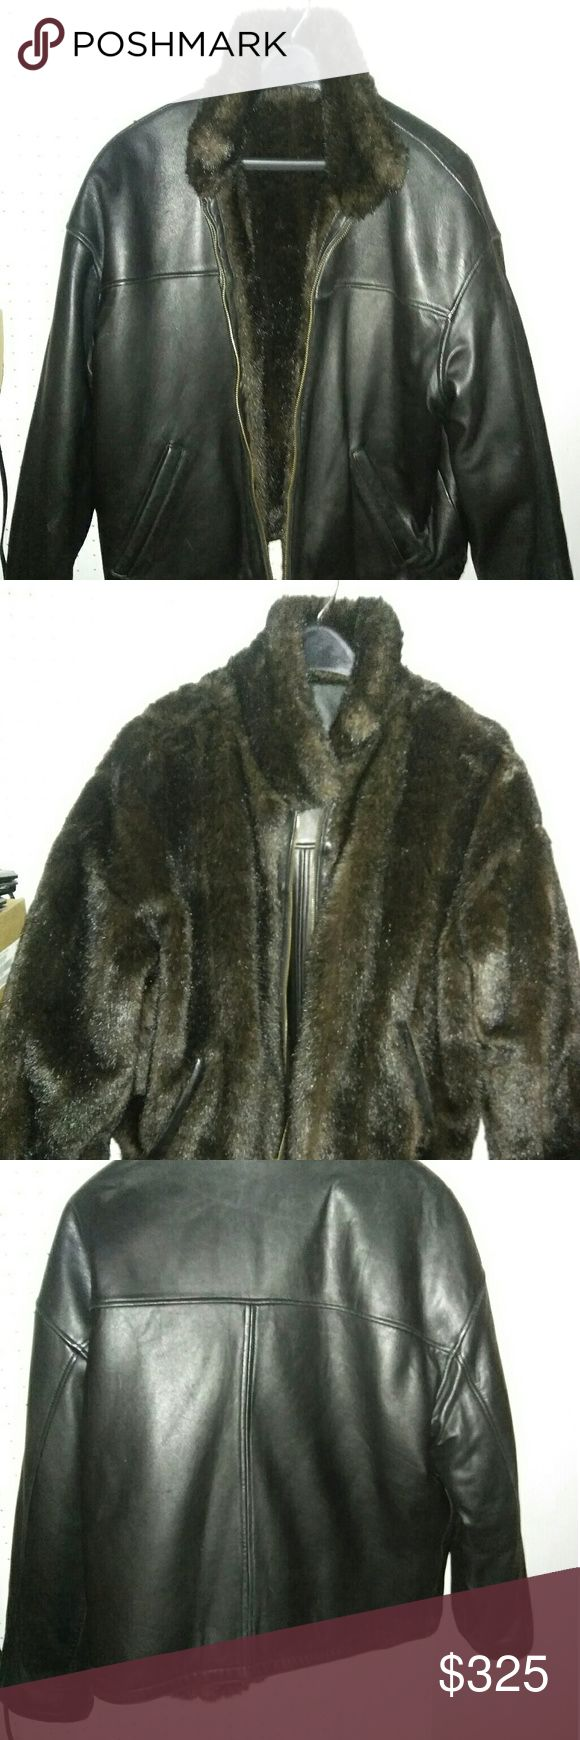 Men black reversable leather and faux mink coat. Pre-owned to new Leather faux mink fur reversable men Pelle studios bomber style coat jacket.  Size L to 1X. Sleeve 32-34. Length 25.5. Pelle Studio Jackets & Coats Bomber & Varsity